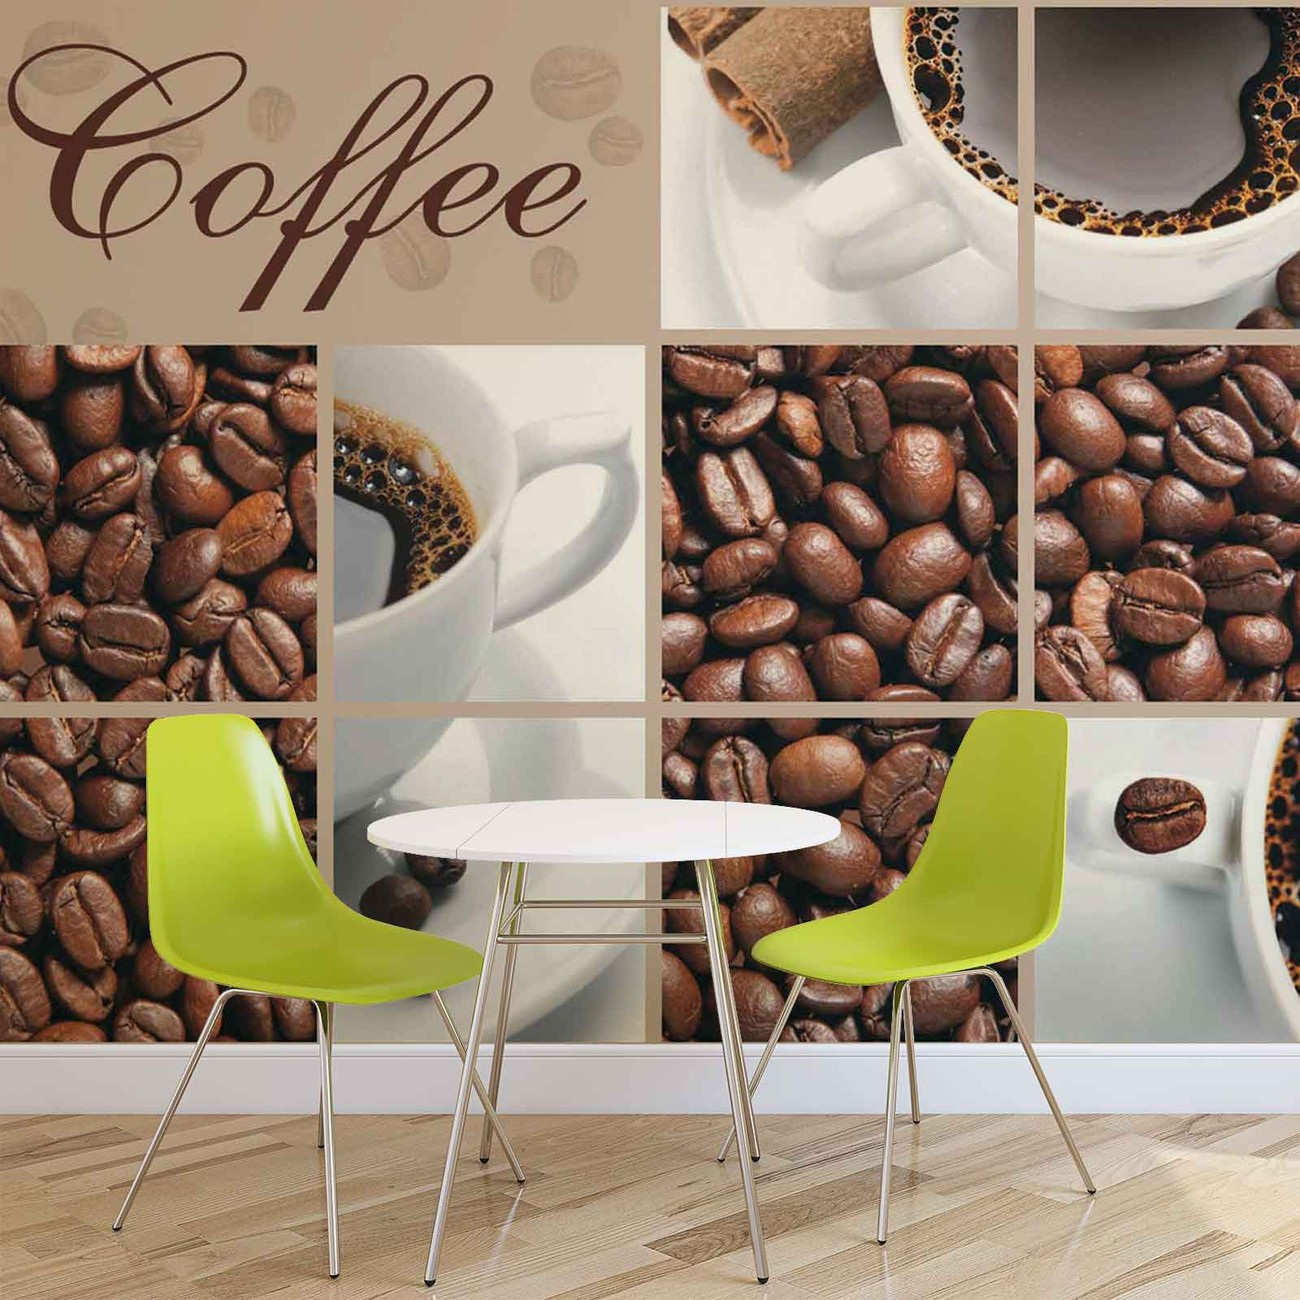 Coffee cafe wall paper mural buy at europosters for Cafe wall mural